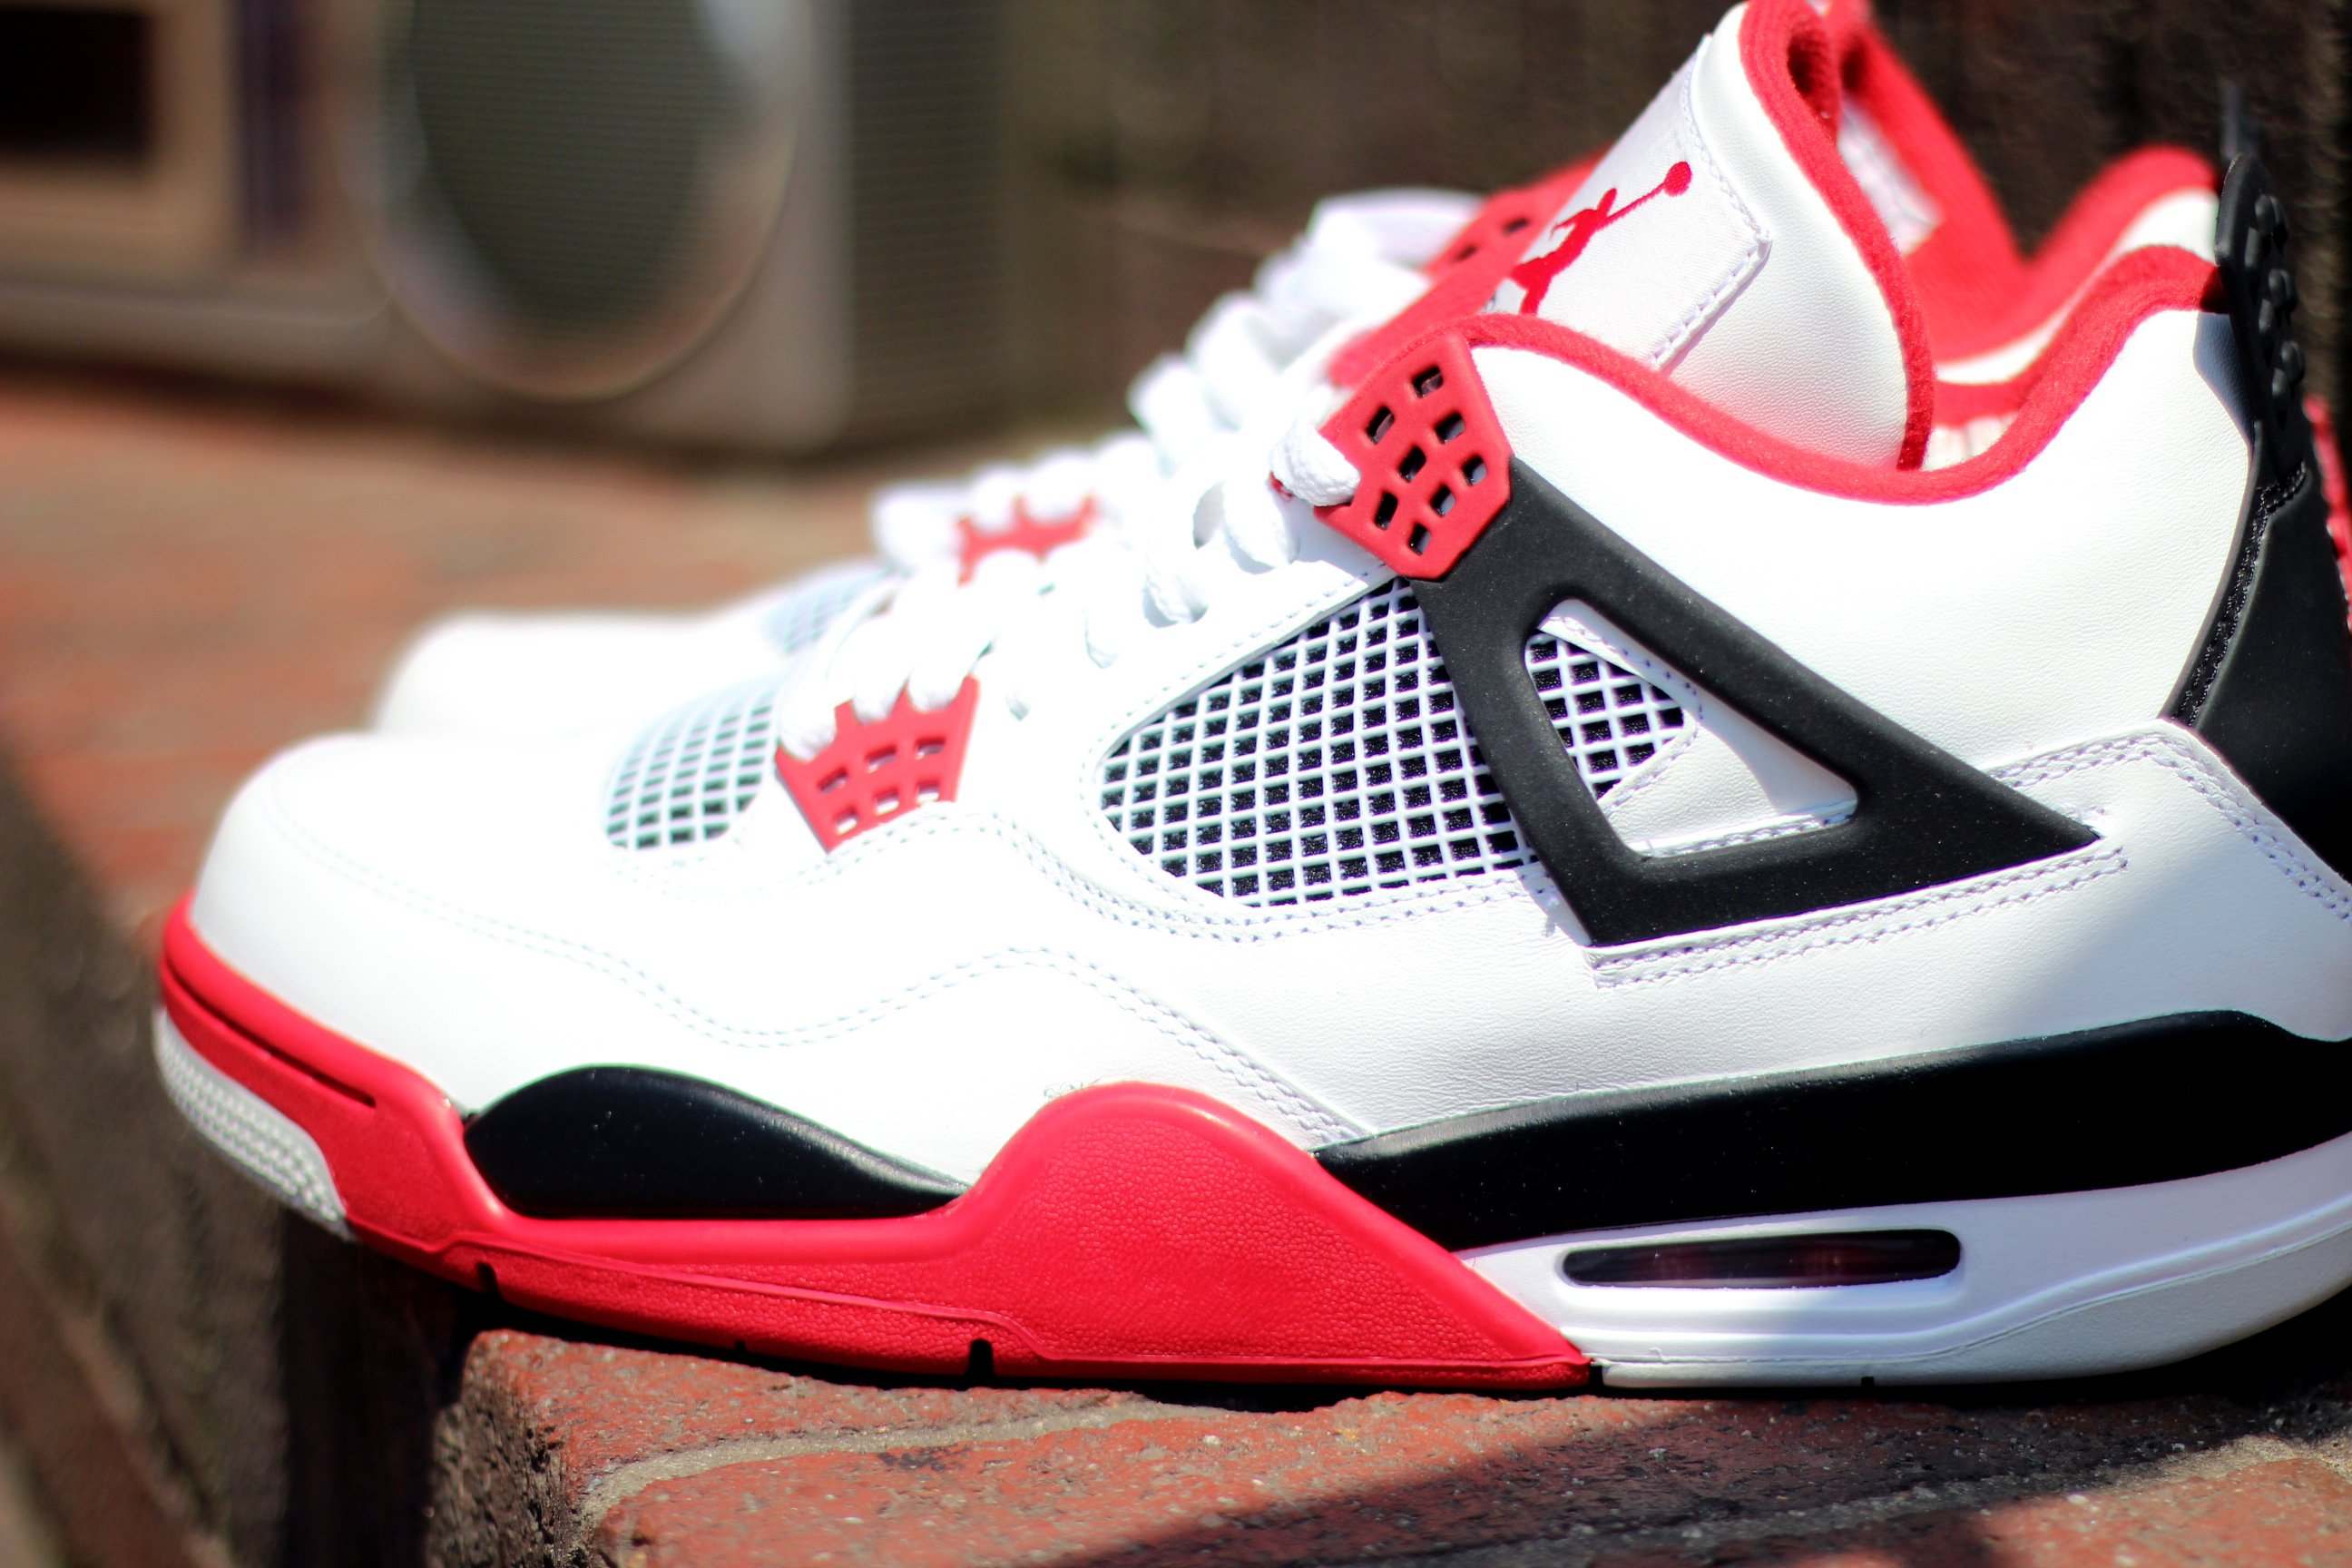 reputable site a32b7 9fcbc ... reduced fire red jordan 4 2012 air jordan 4 retro ccf8a 3b552